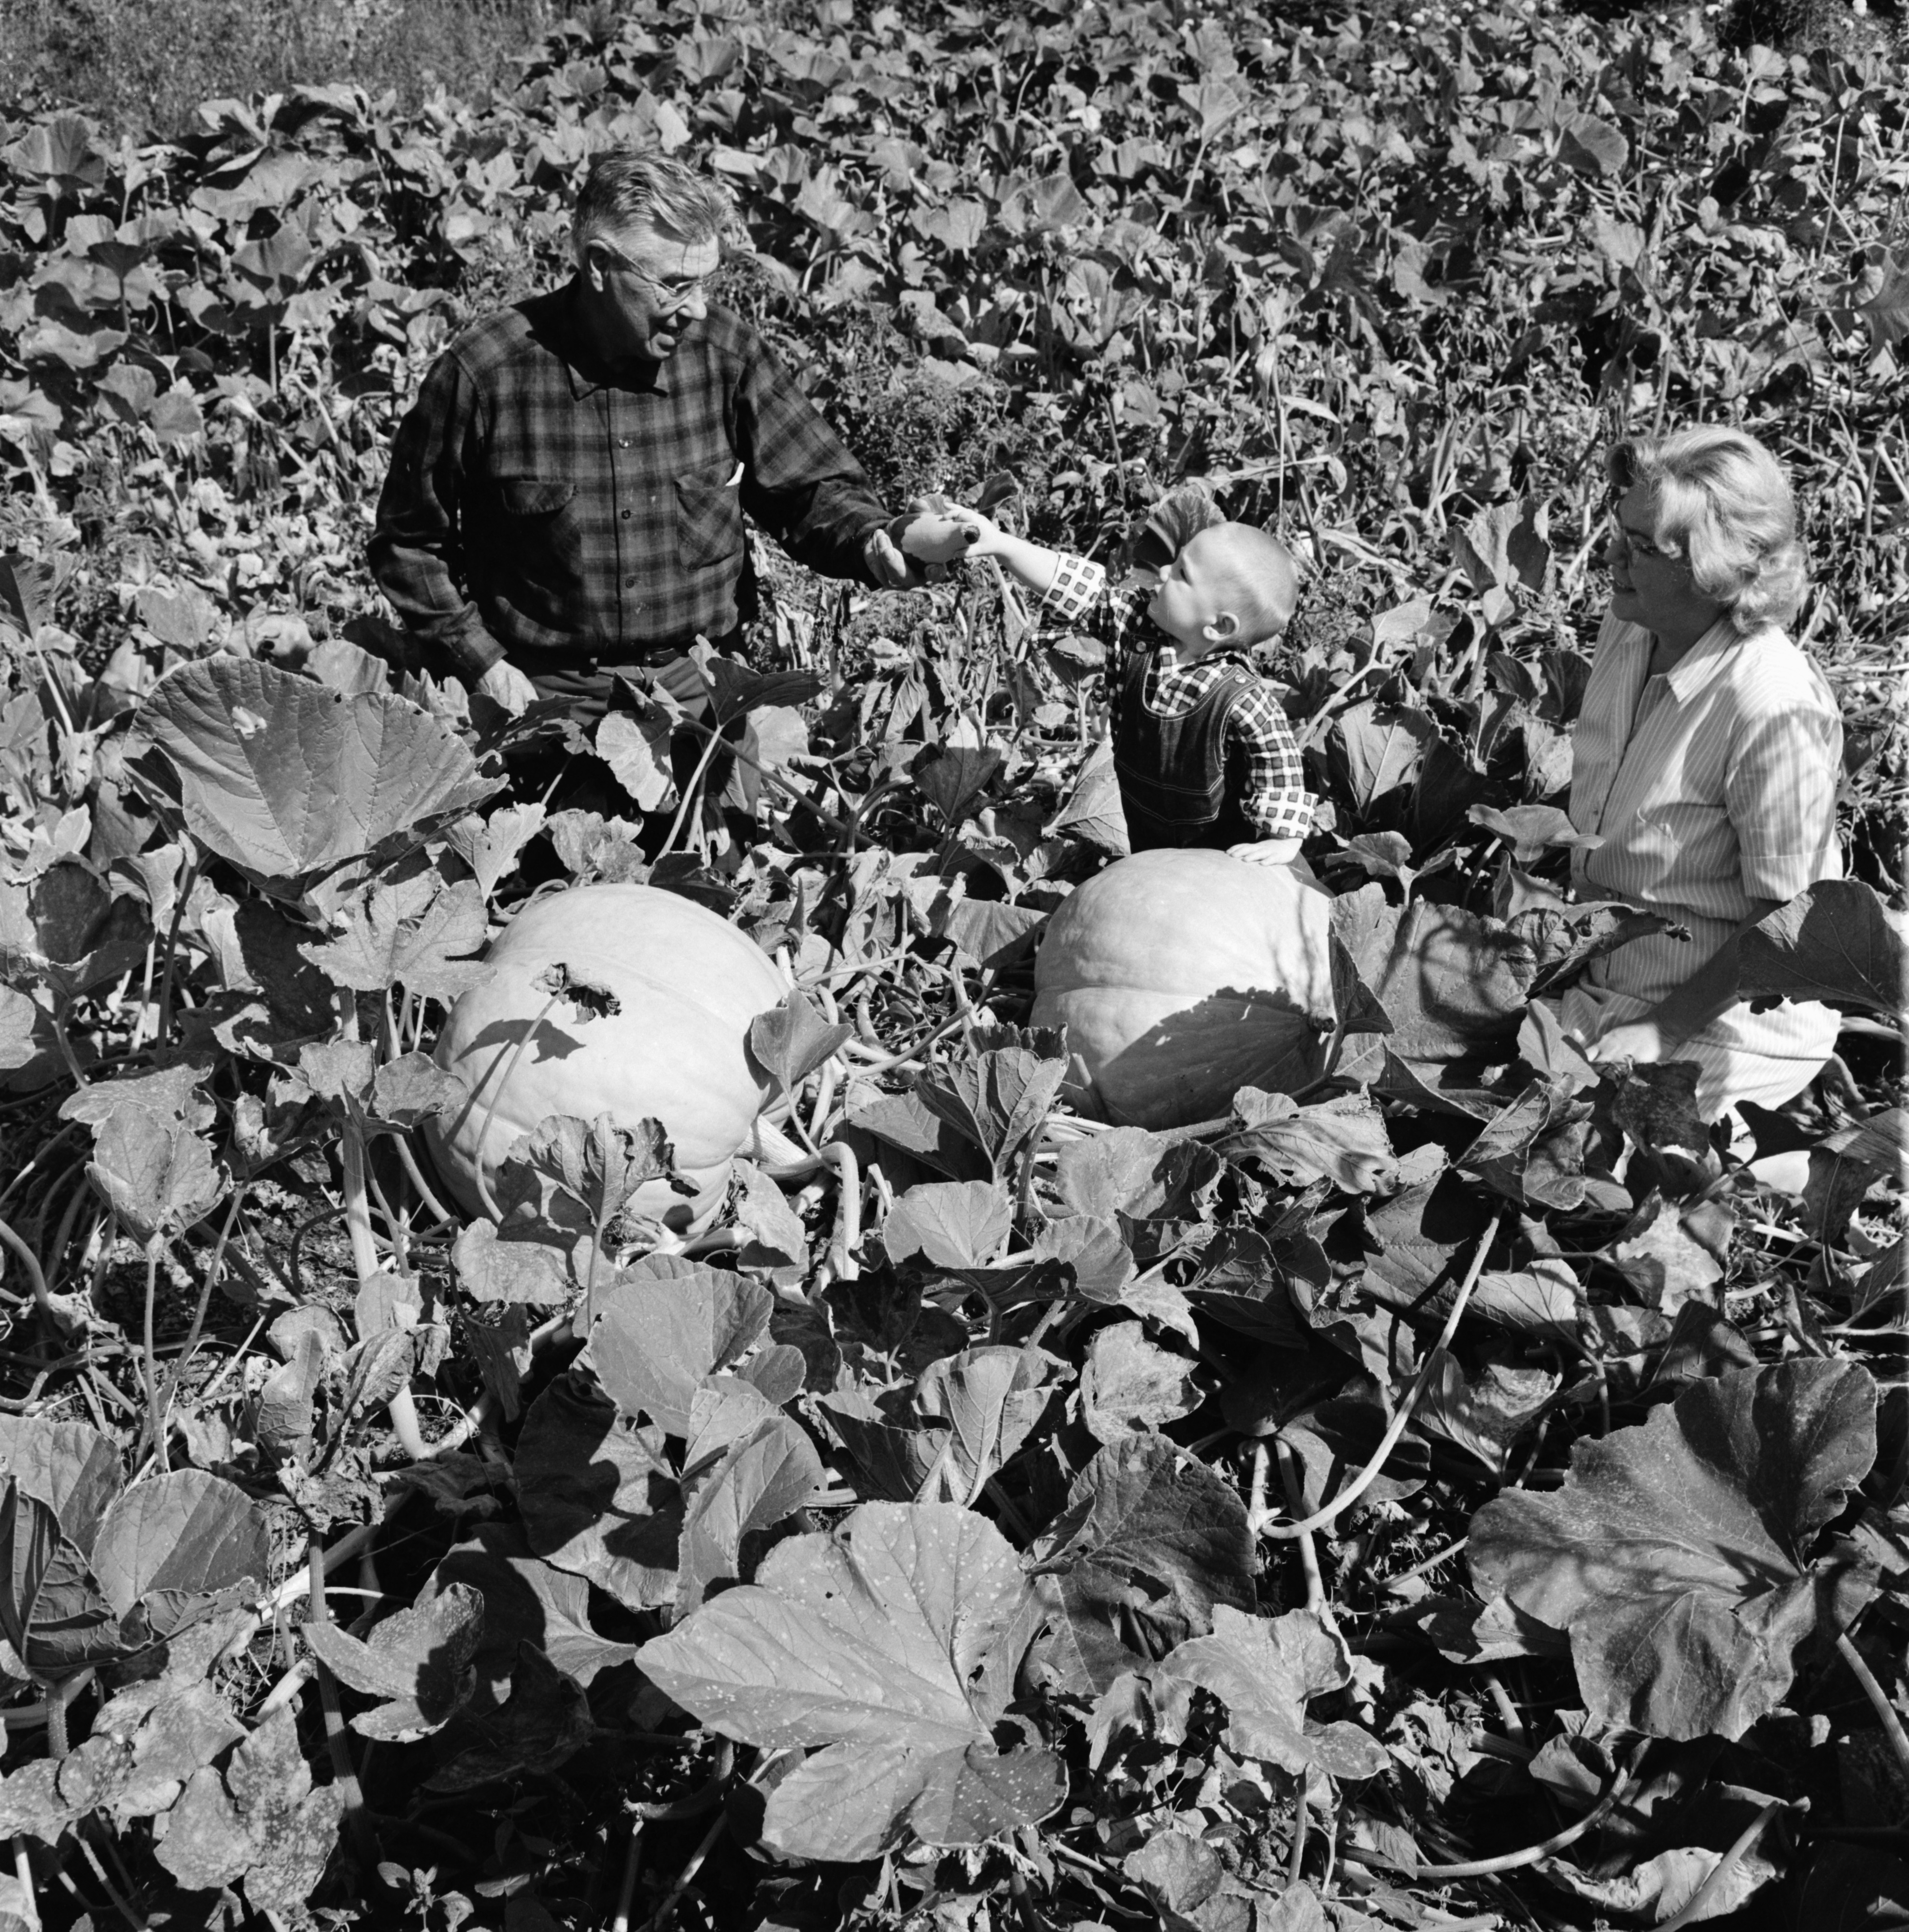 Mrs. Mackmiller's Vegetable Garden, October 1967 image